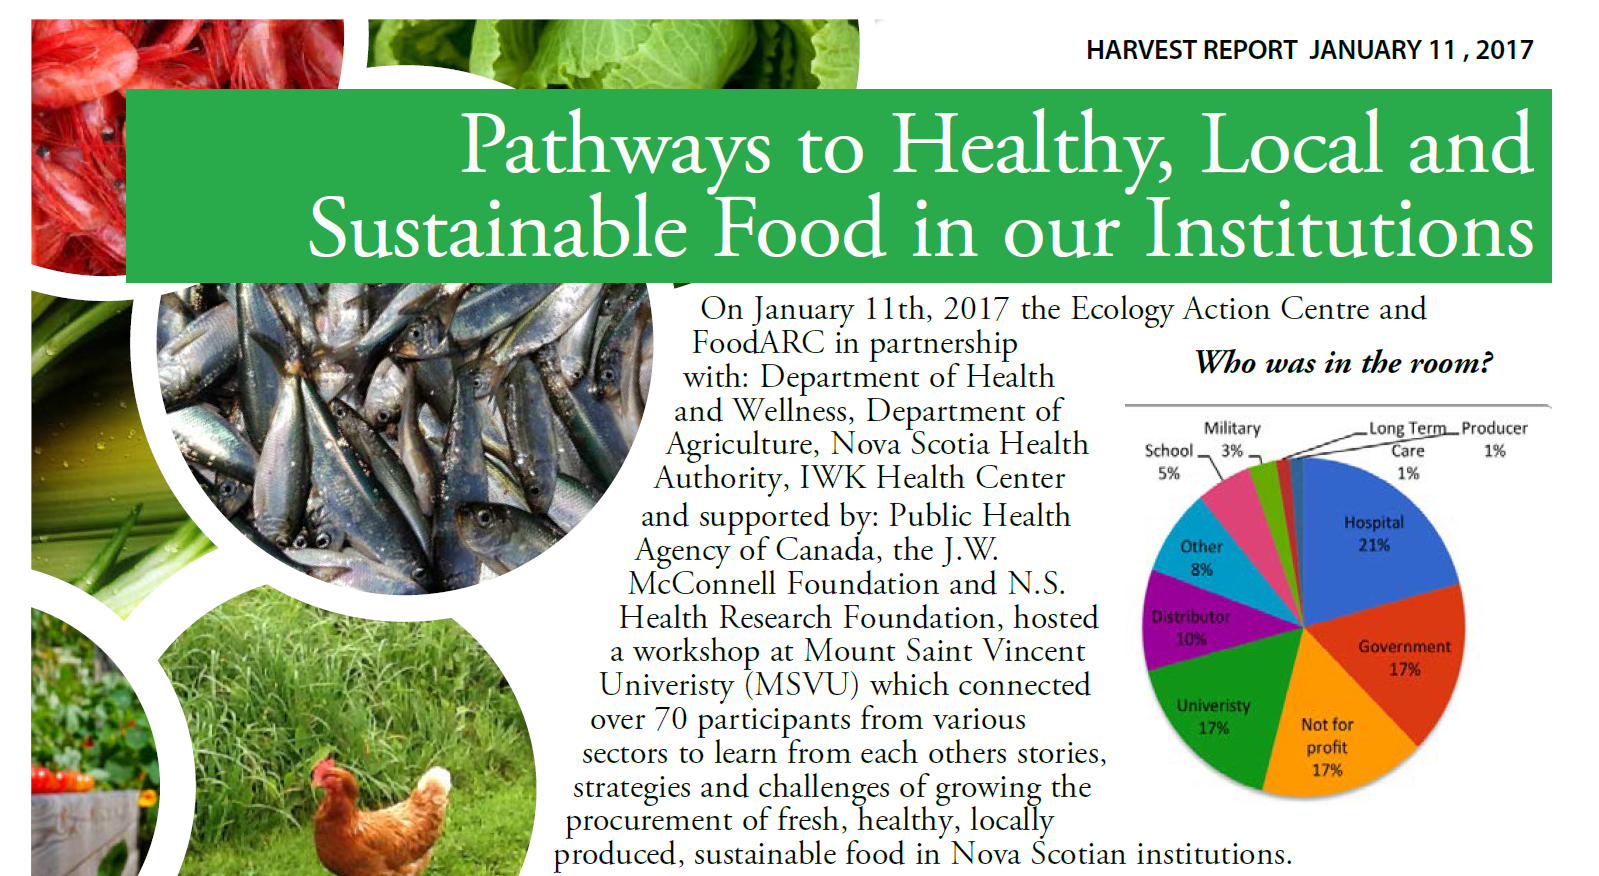 Pathways to Healthy, Local and Sustainable Food in our Institutions: Harvest Report 2017